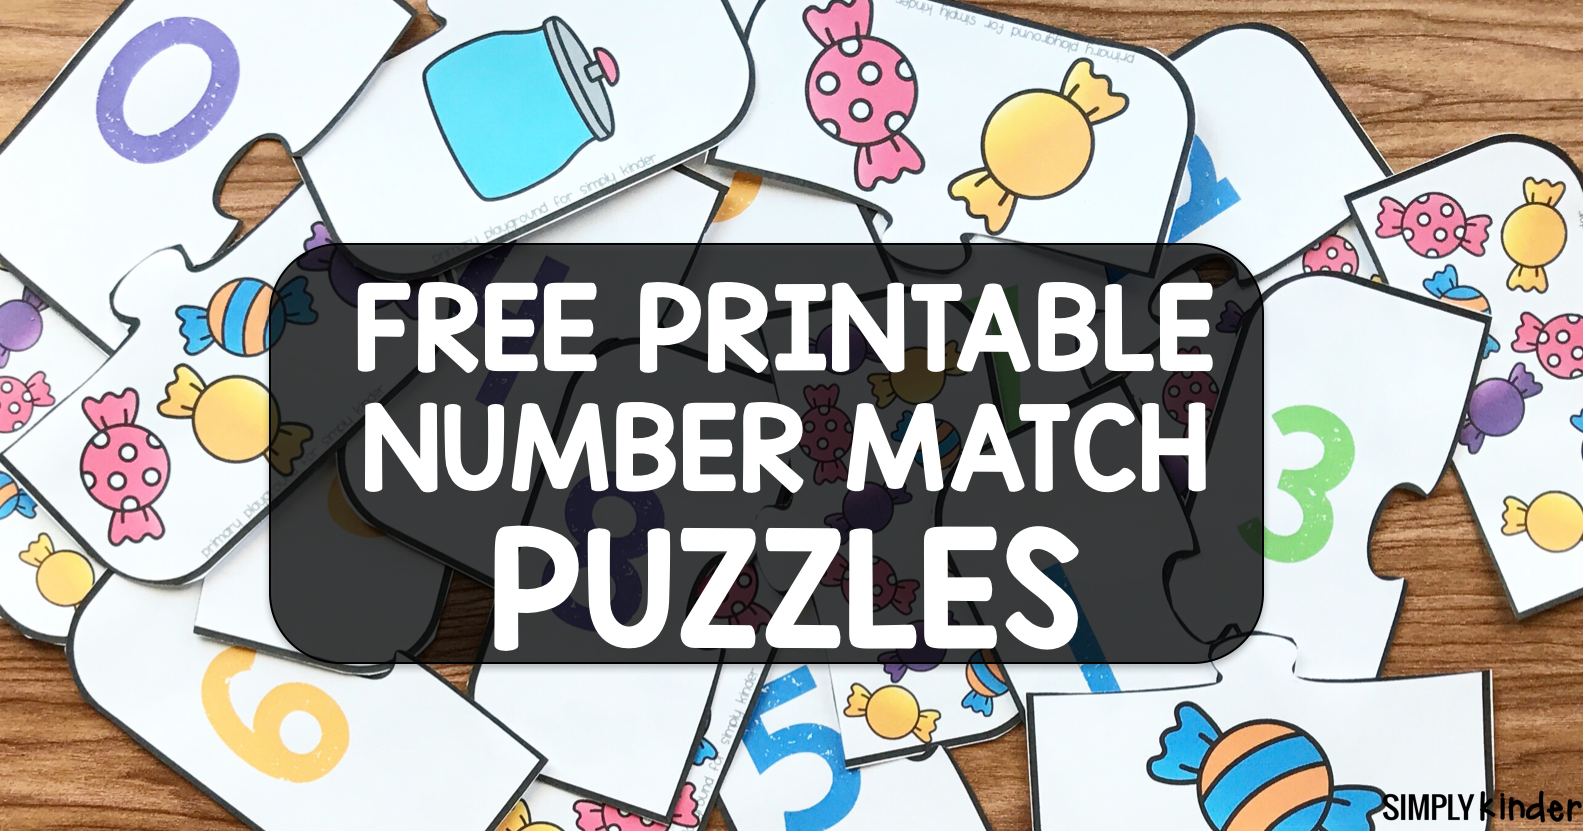 Free Printable Number Match Puzzles